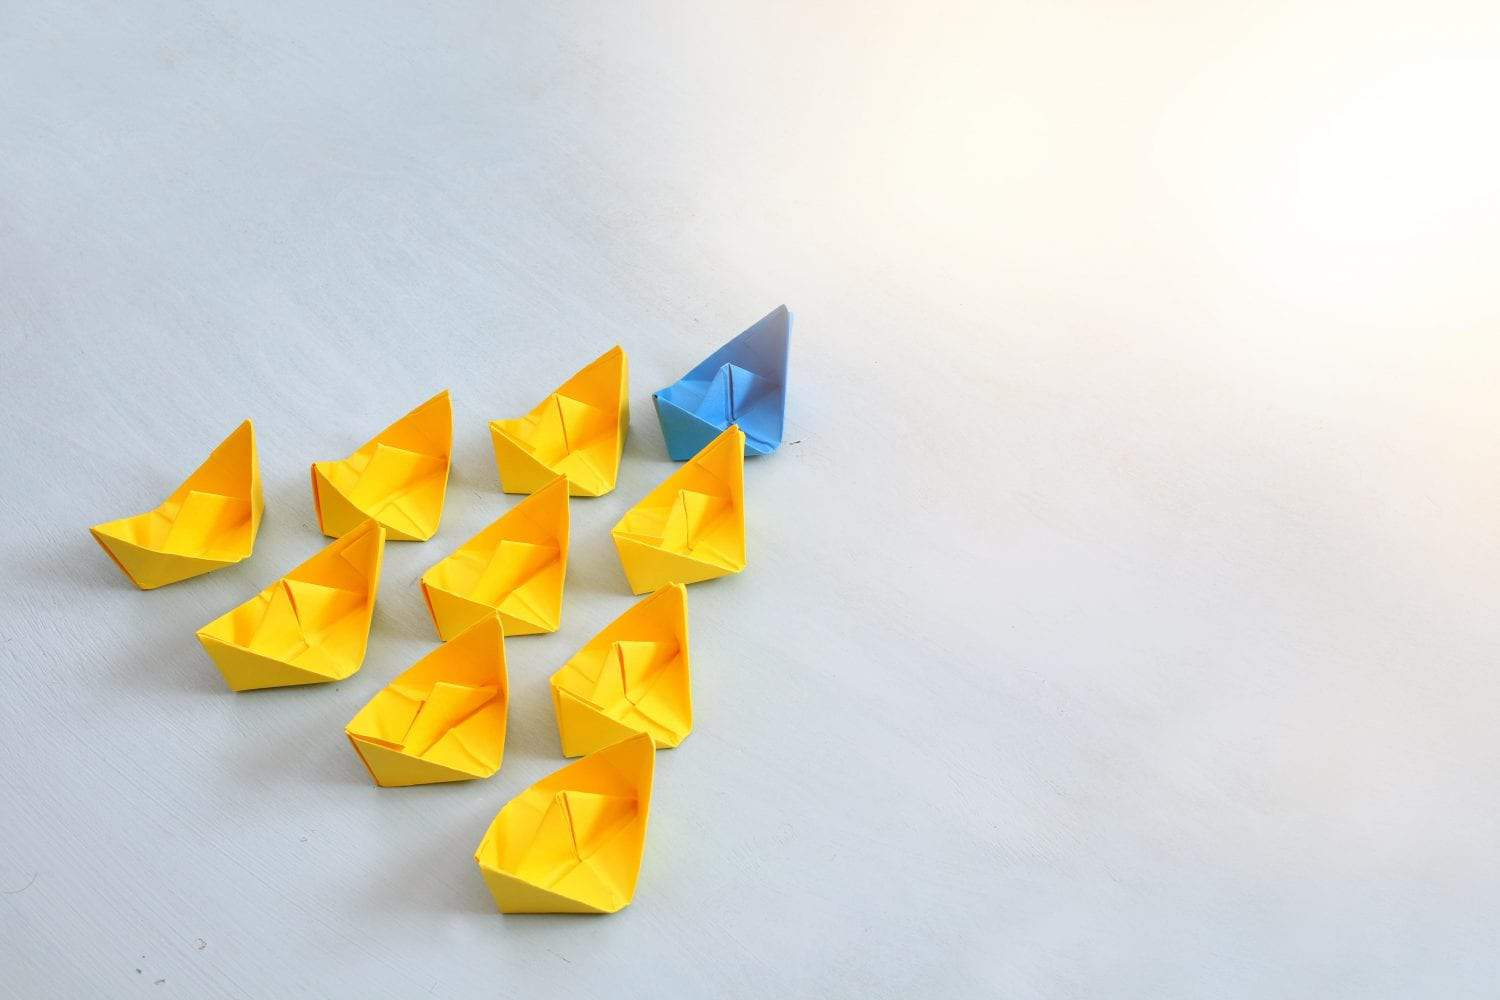 Follow the Leader: Analyzing Bitcoin and Cryptocurrency Price Correlations